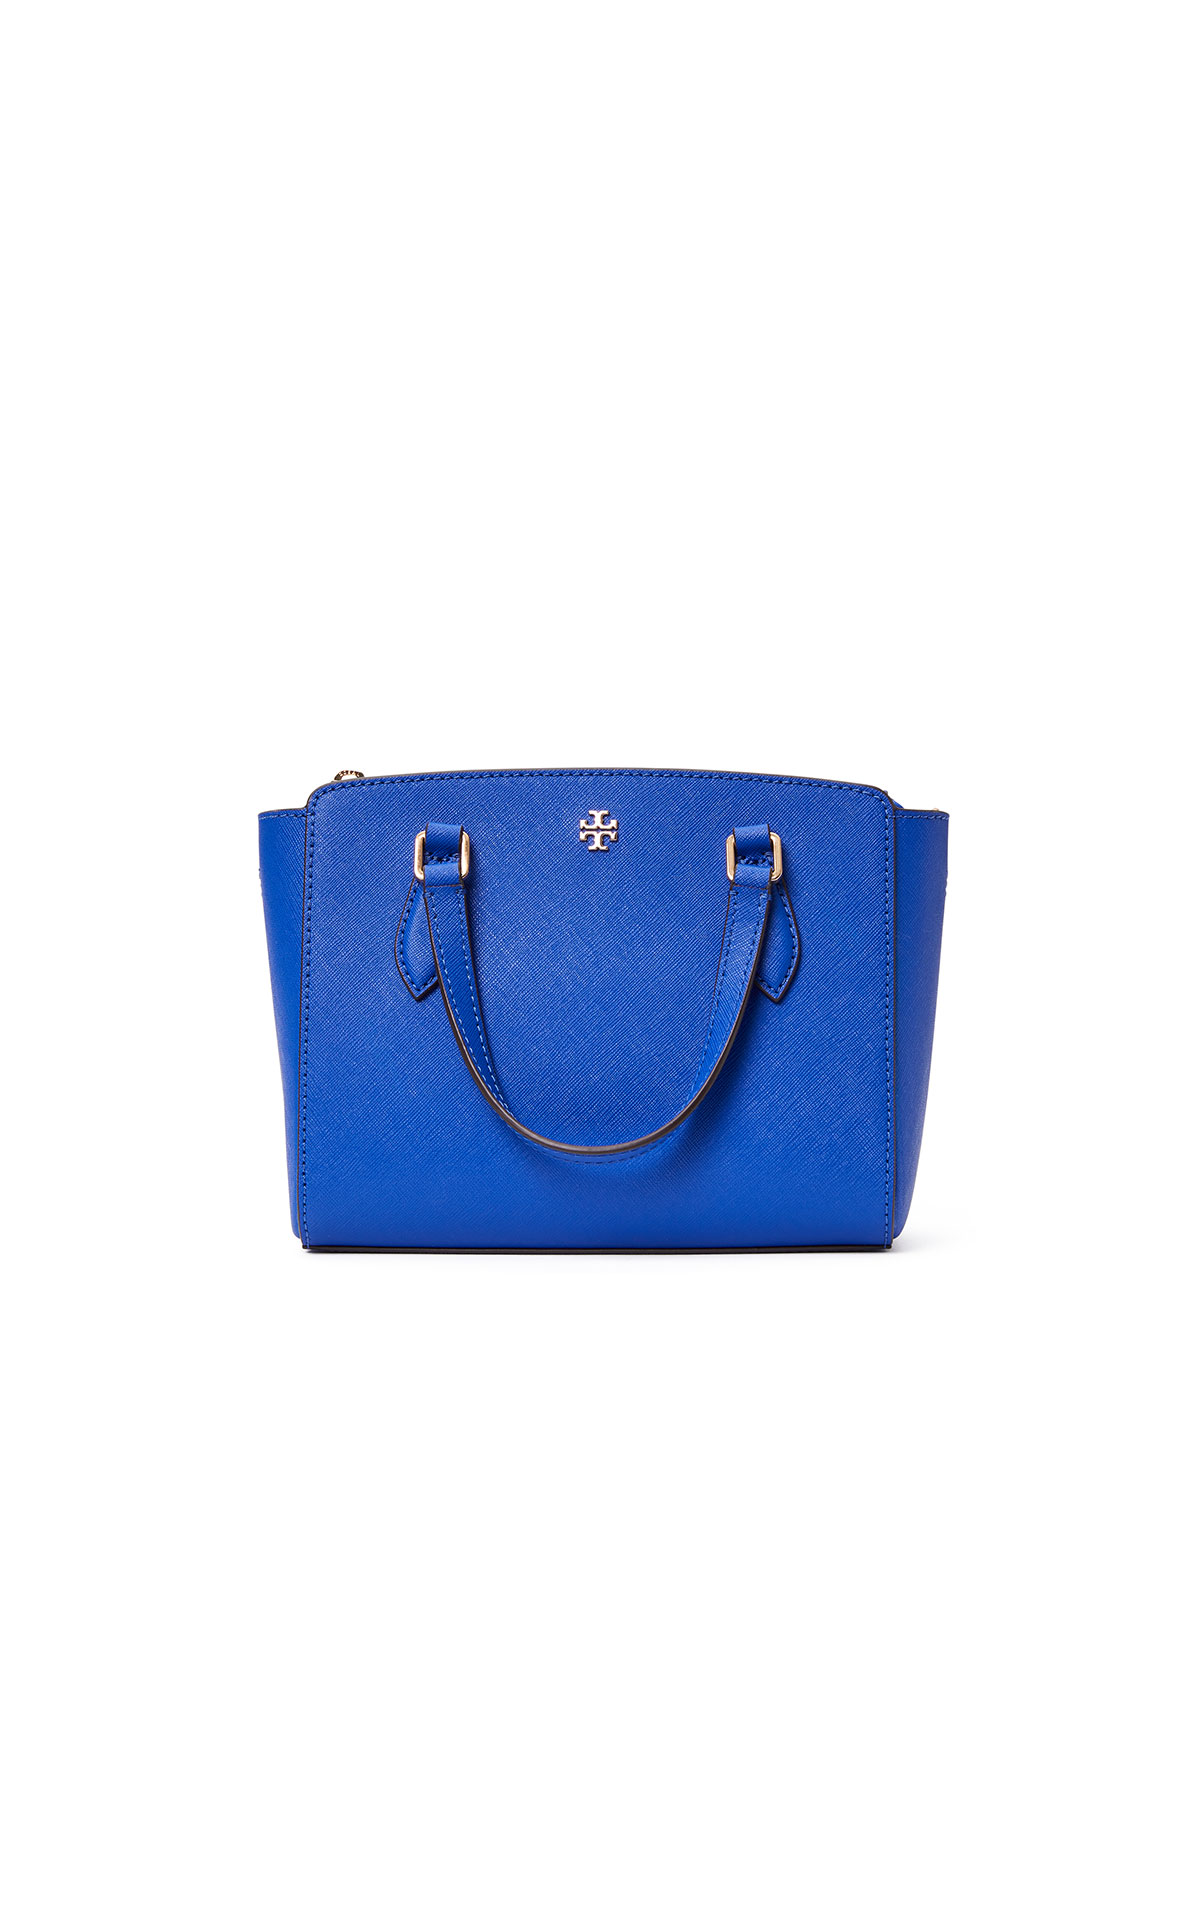 Tory Burch Emerson Mini Top Zip Tote at The Bicester Village Shopping Collection